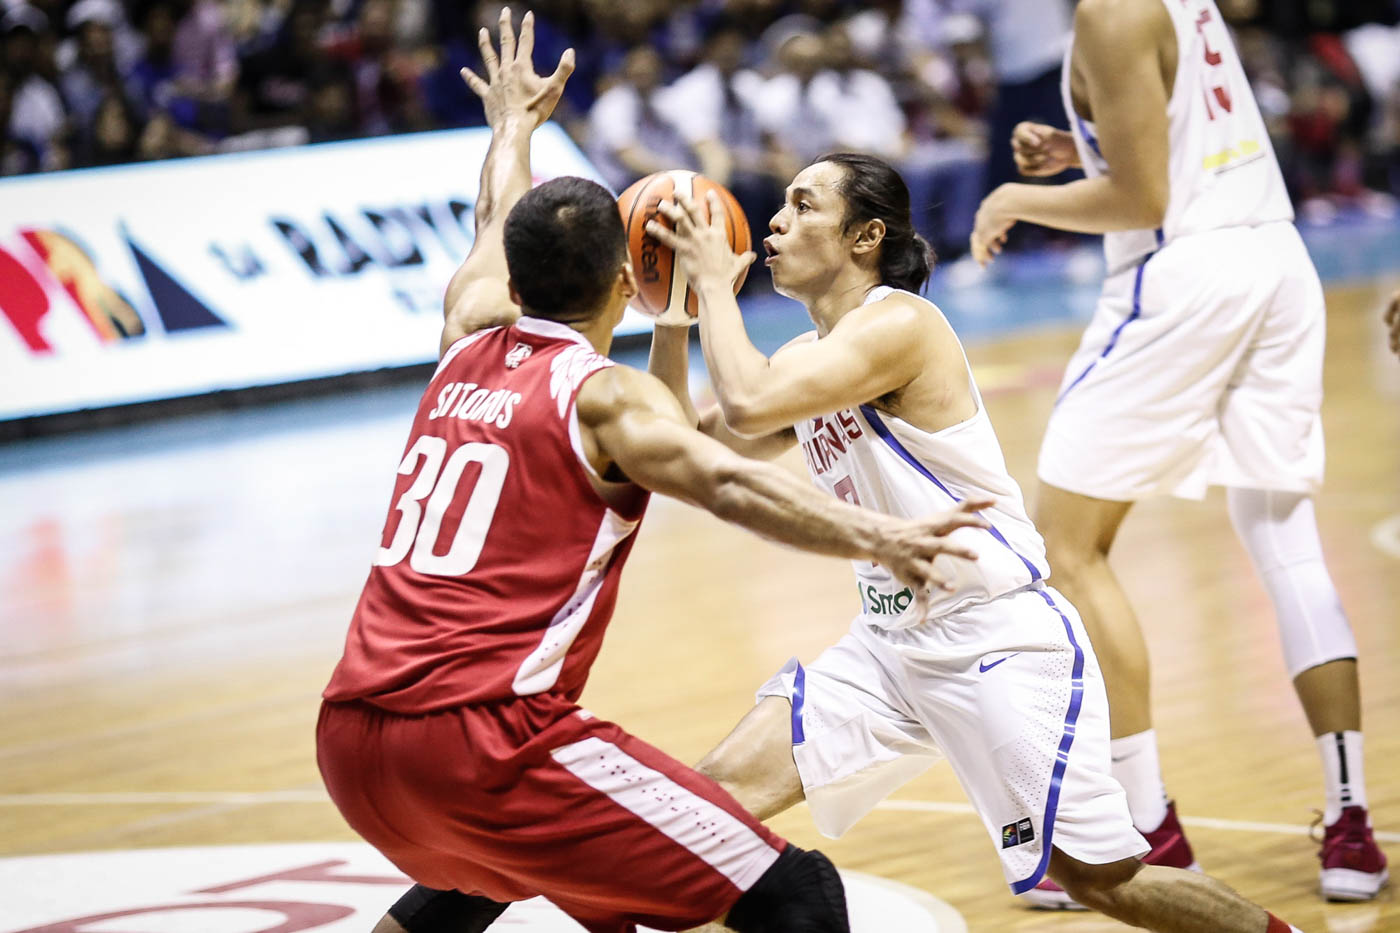 FAVORITE. Terrence Romeo is a crowd favorite during the tournament. Photo by Josh Albelda/Rappler